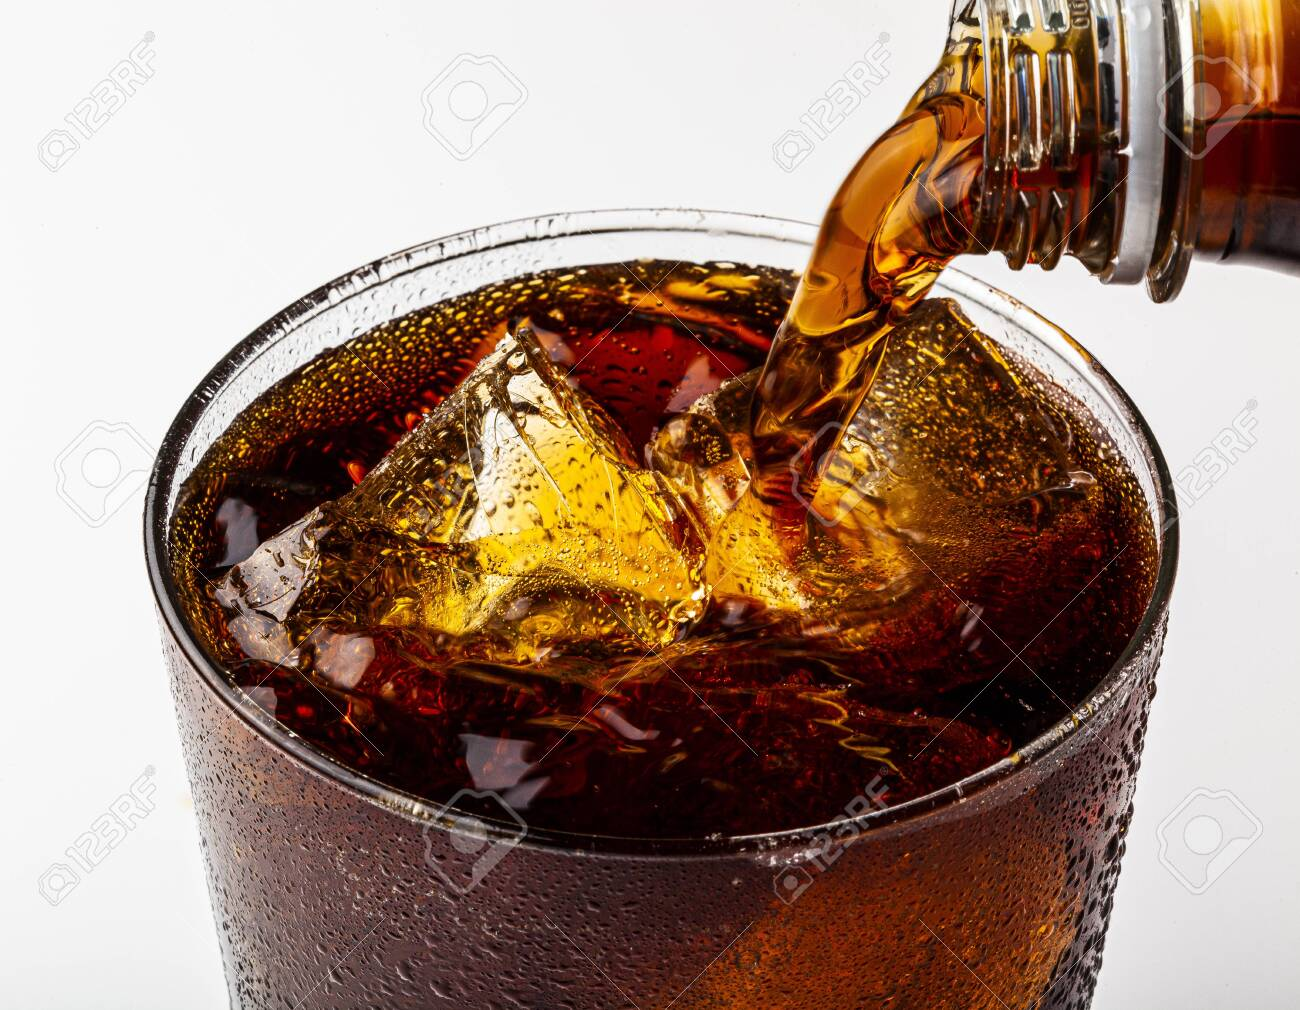 Ice cold refreshing carbonated summer drink with ice chunks in a glass. - 155549895